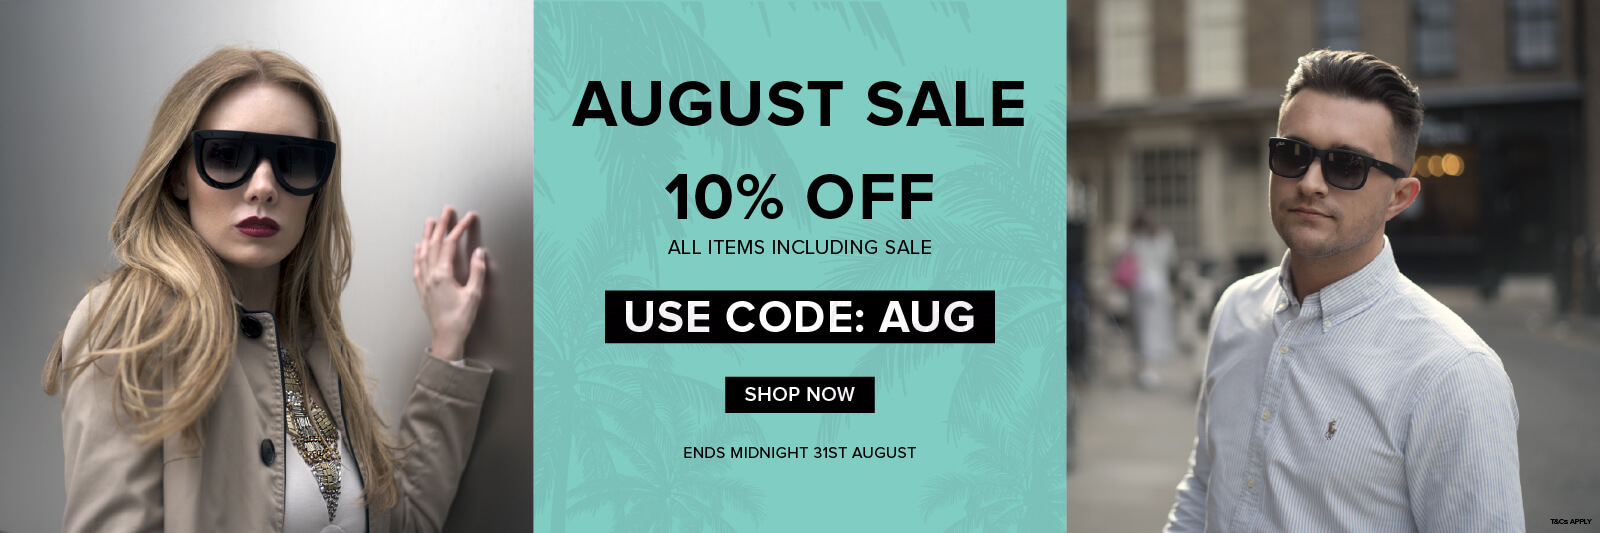 August sale